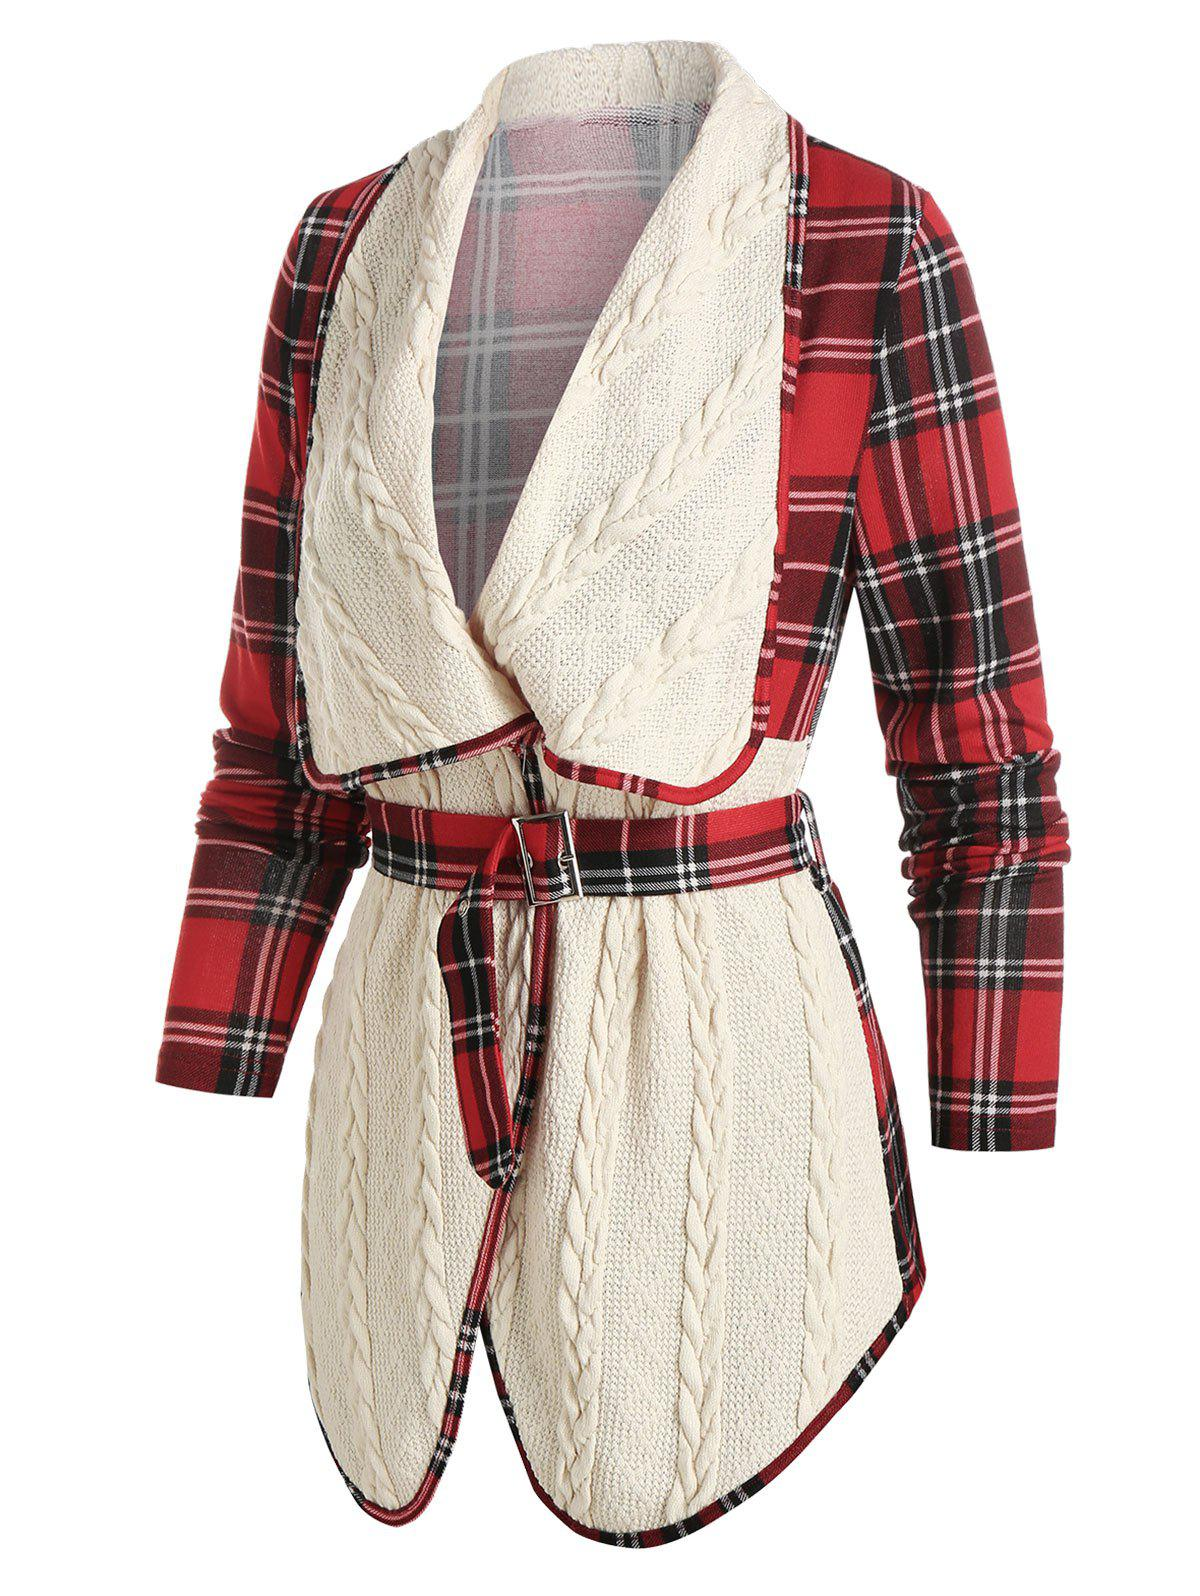 Buy Plaid Print Belted Cable Knit Jacket